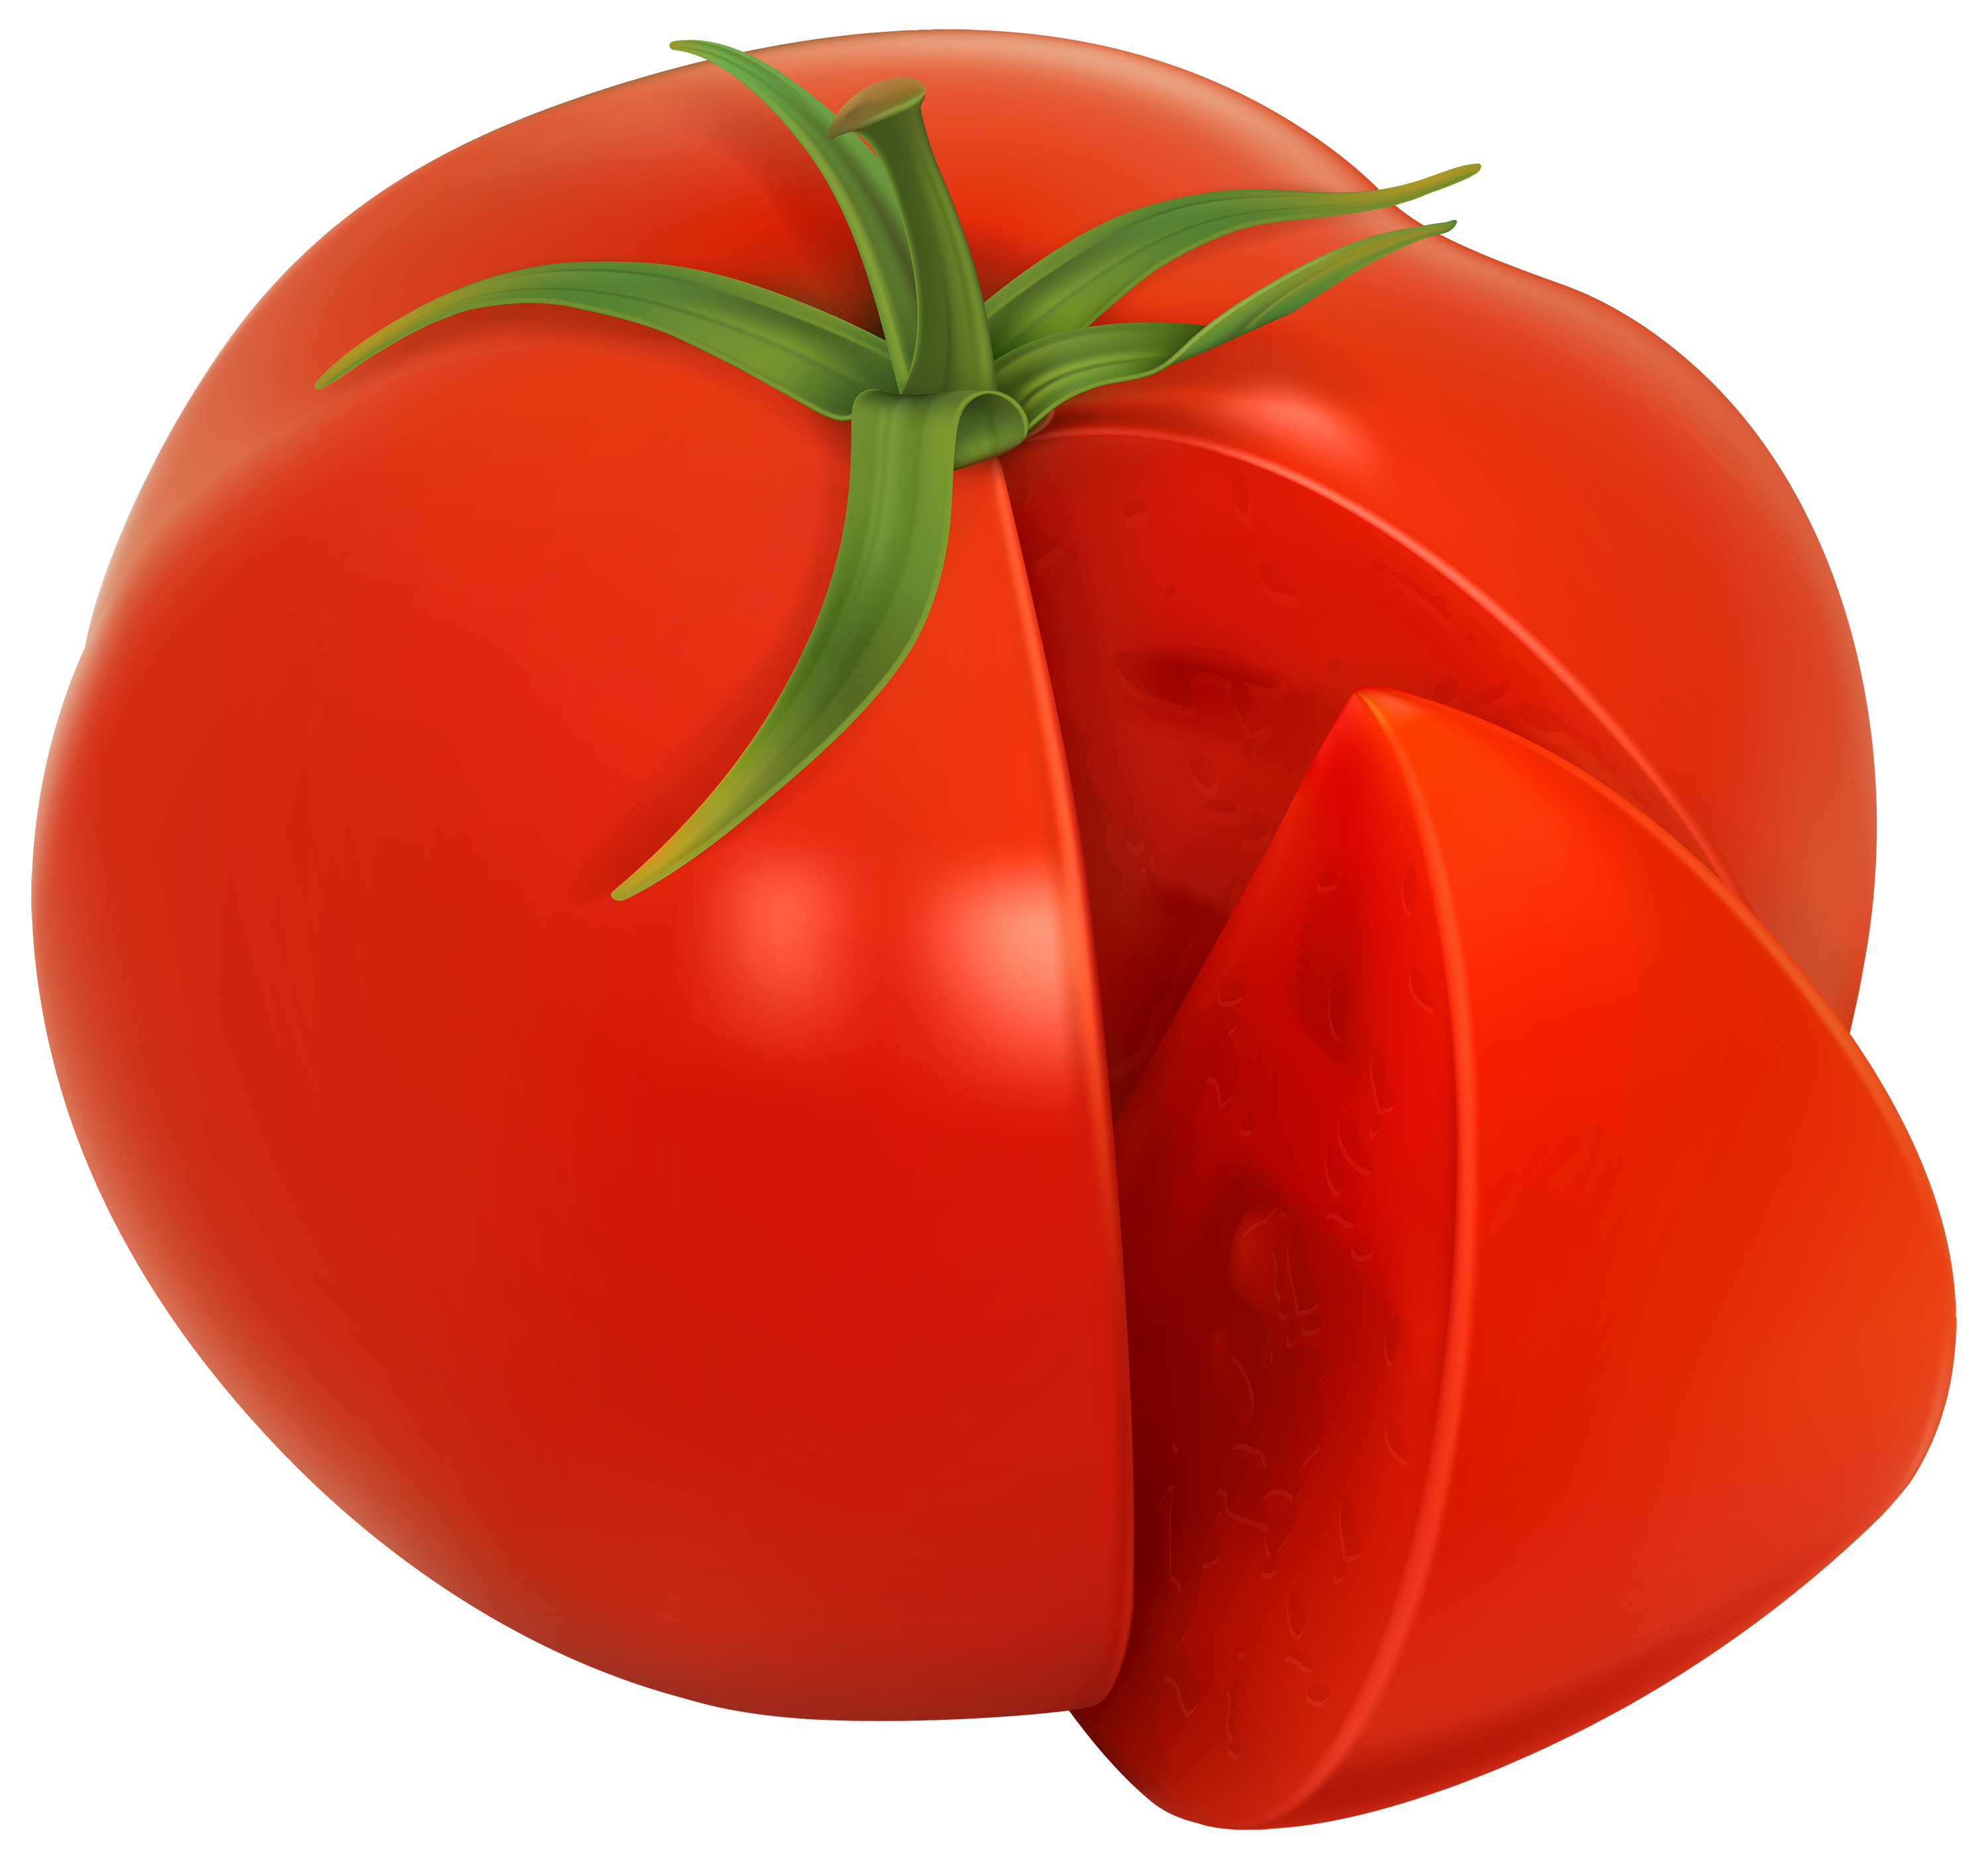 Tomato PNG Clipart Image.